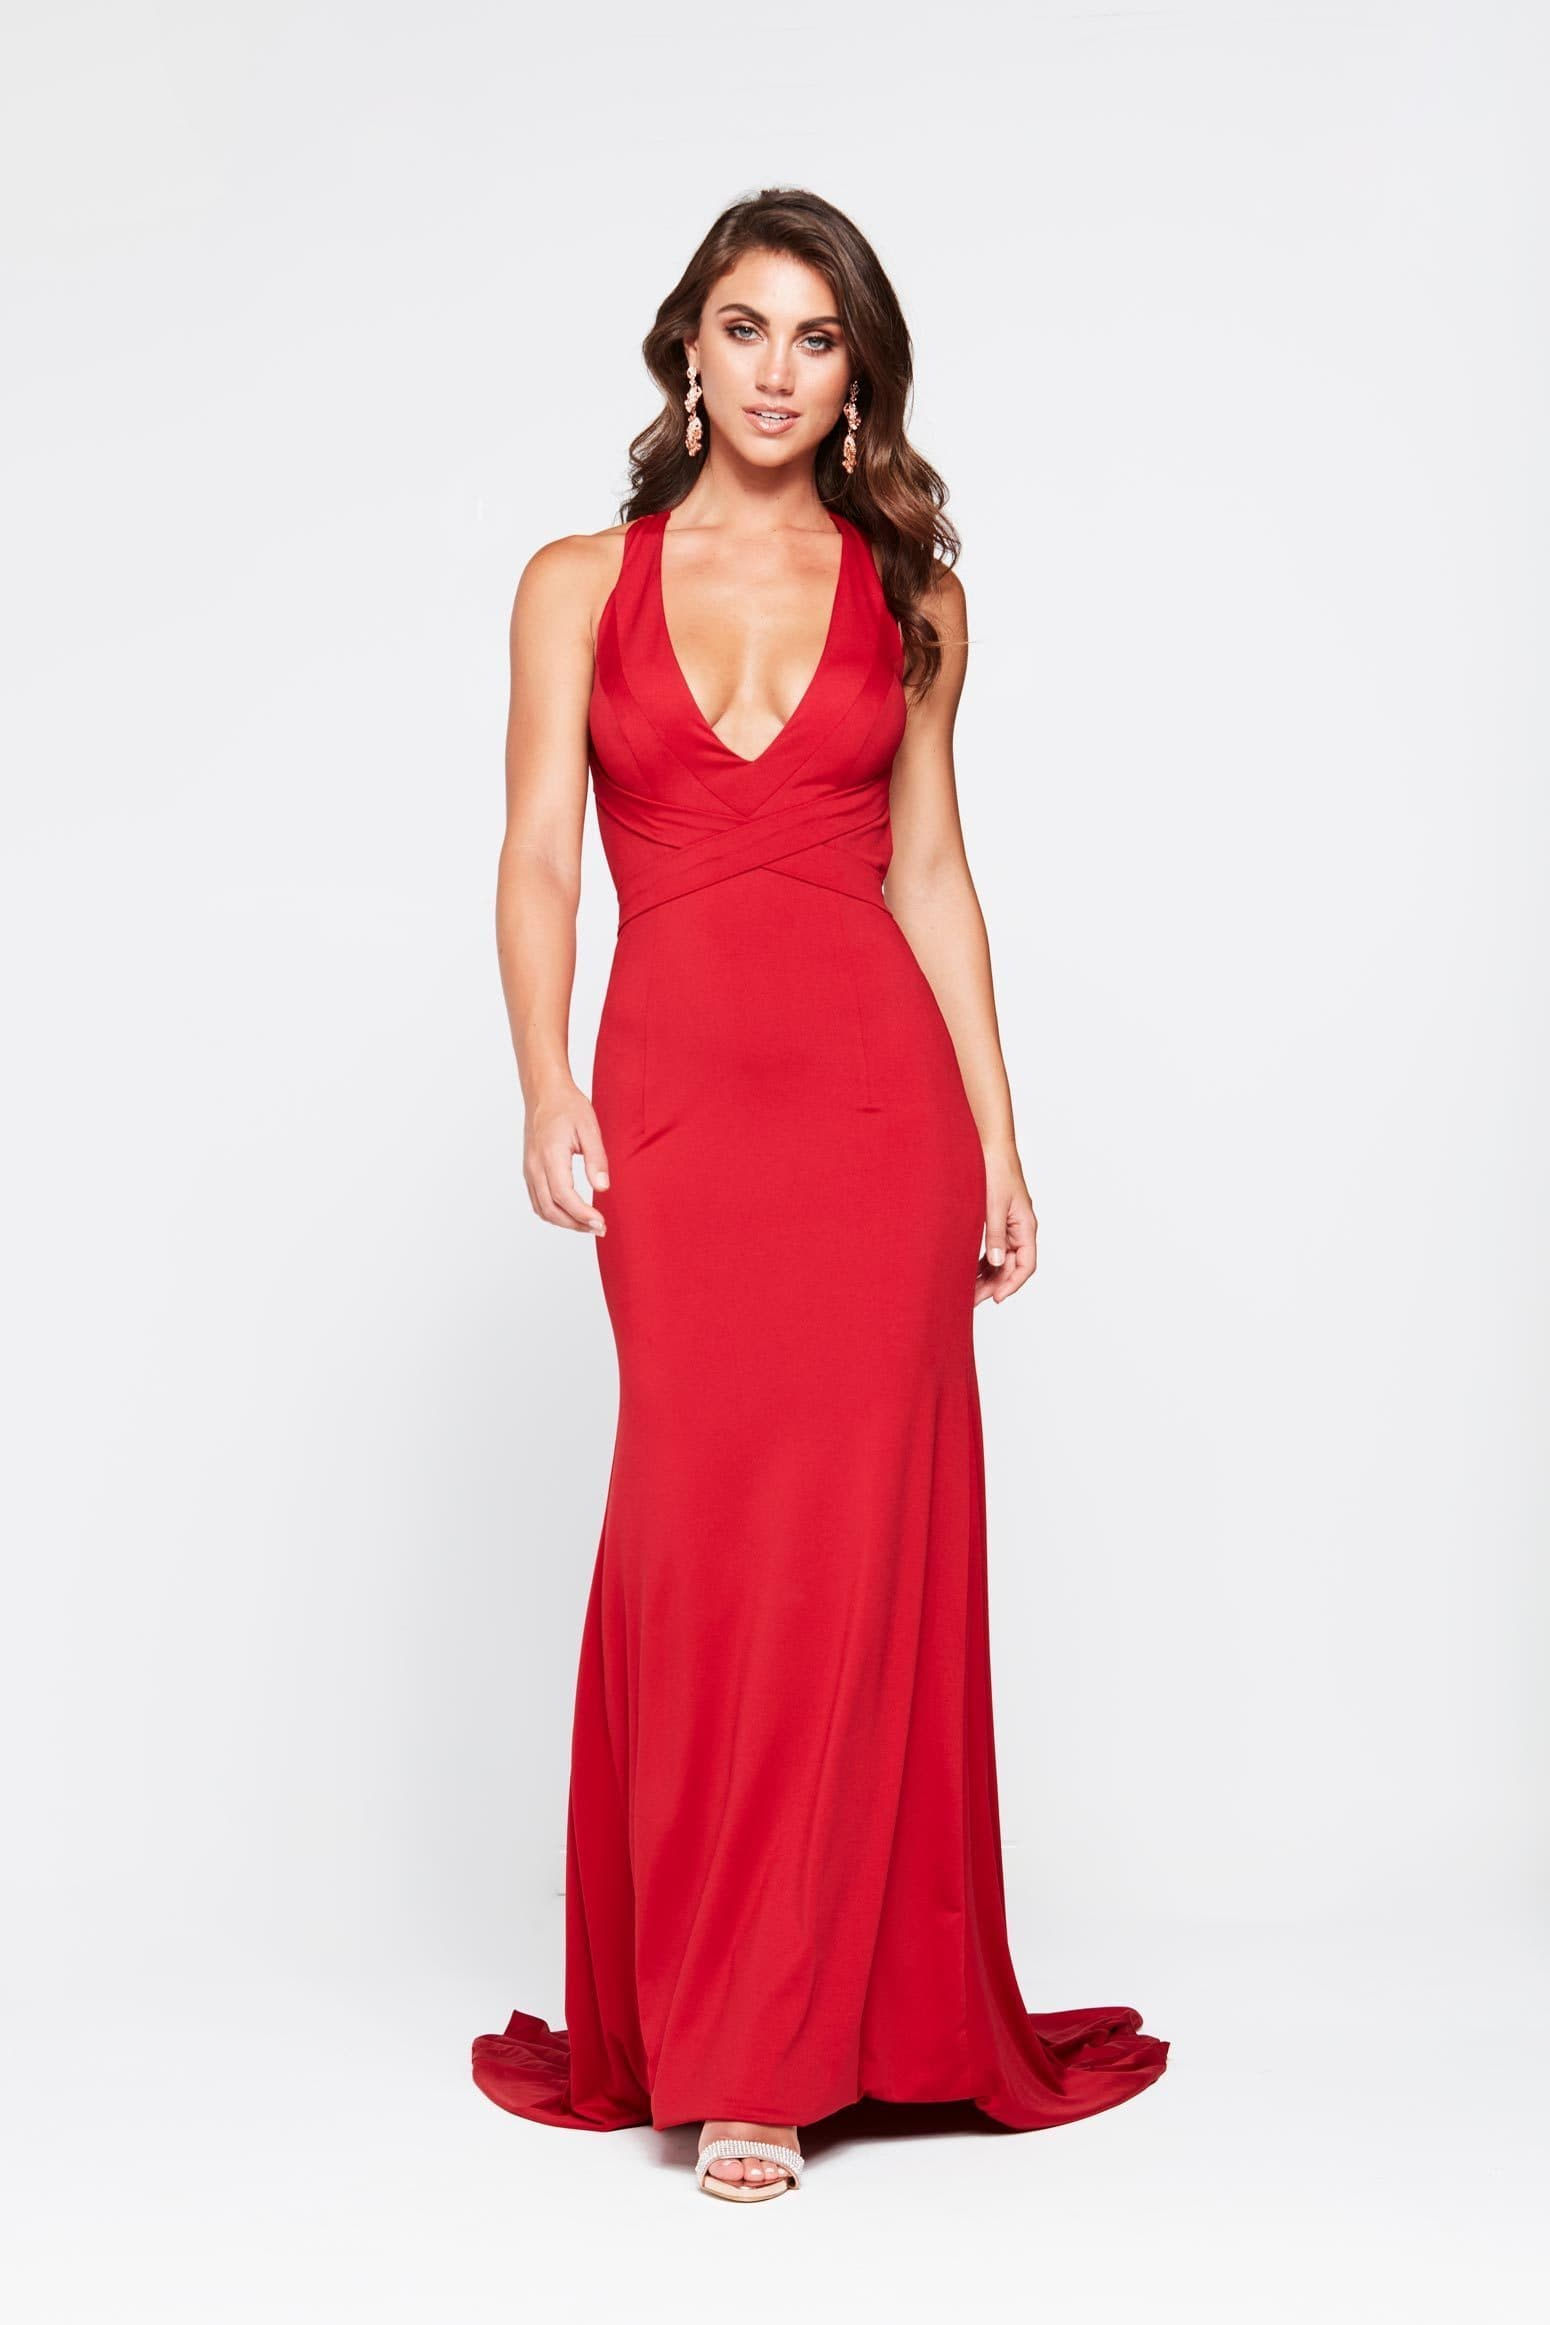 4cf84fb198f0 A N Joanna- Deep Red Jersey Dress with V Neck and Criss Cross Back ...